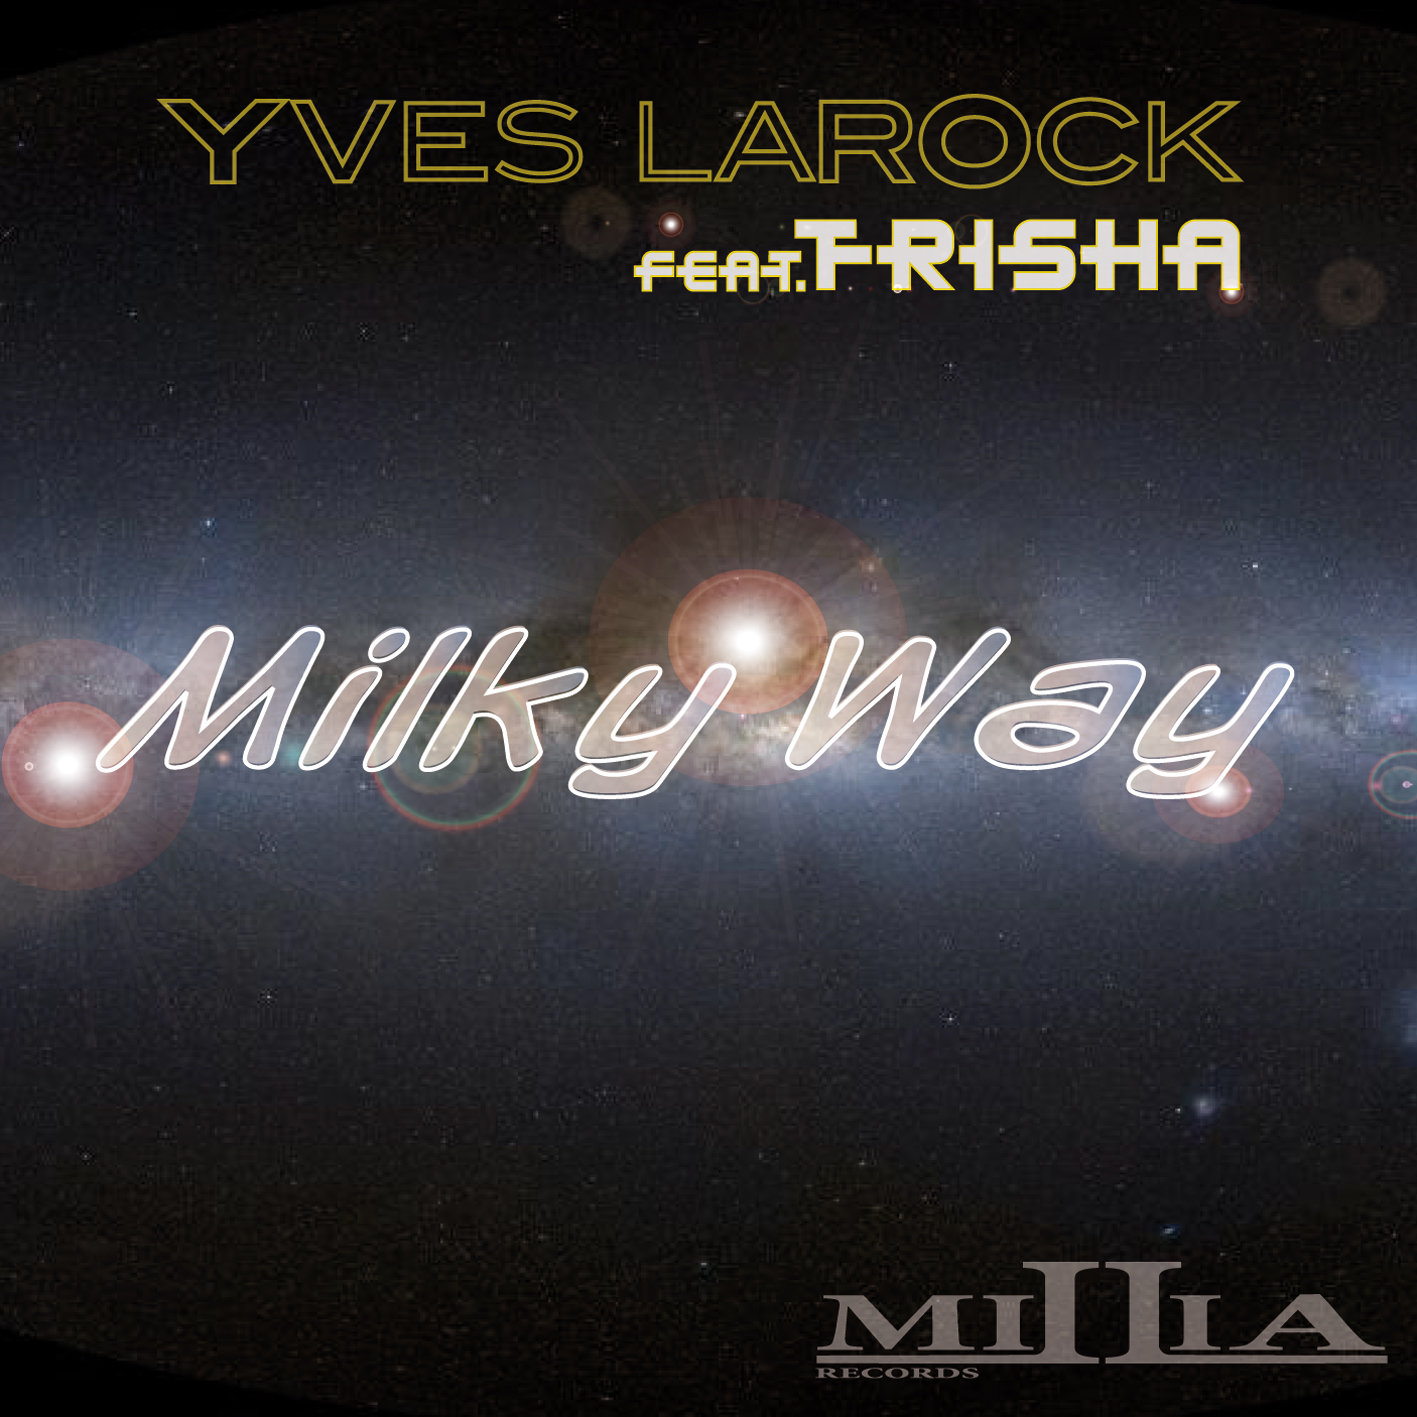 Yves Larock ft Trisha - Milky Way EP